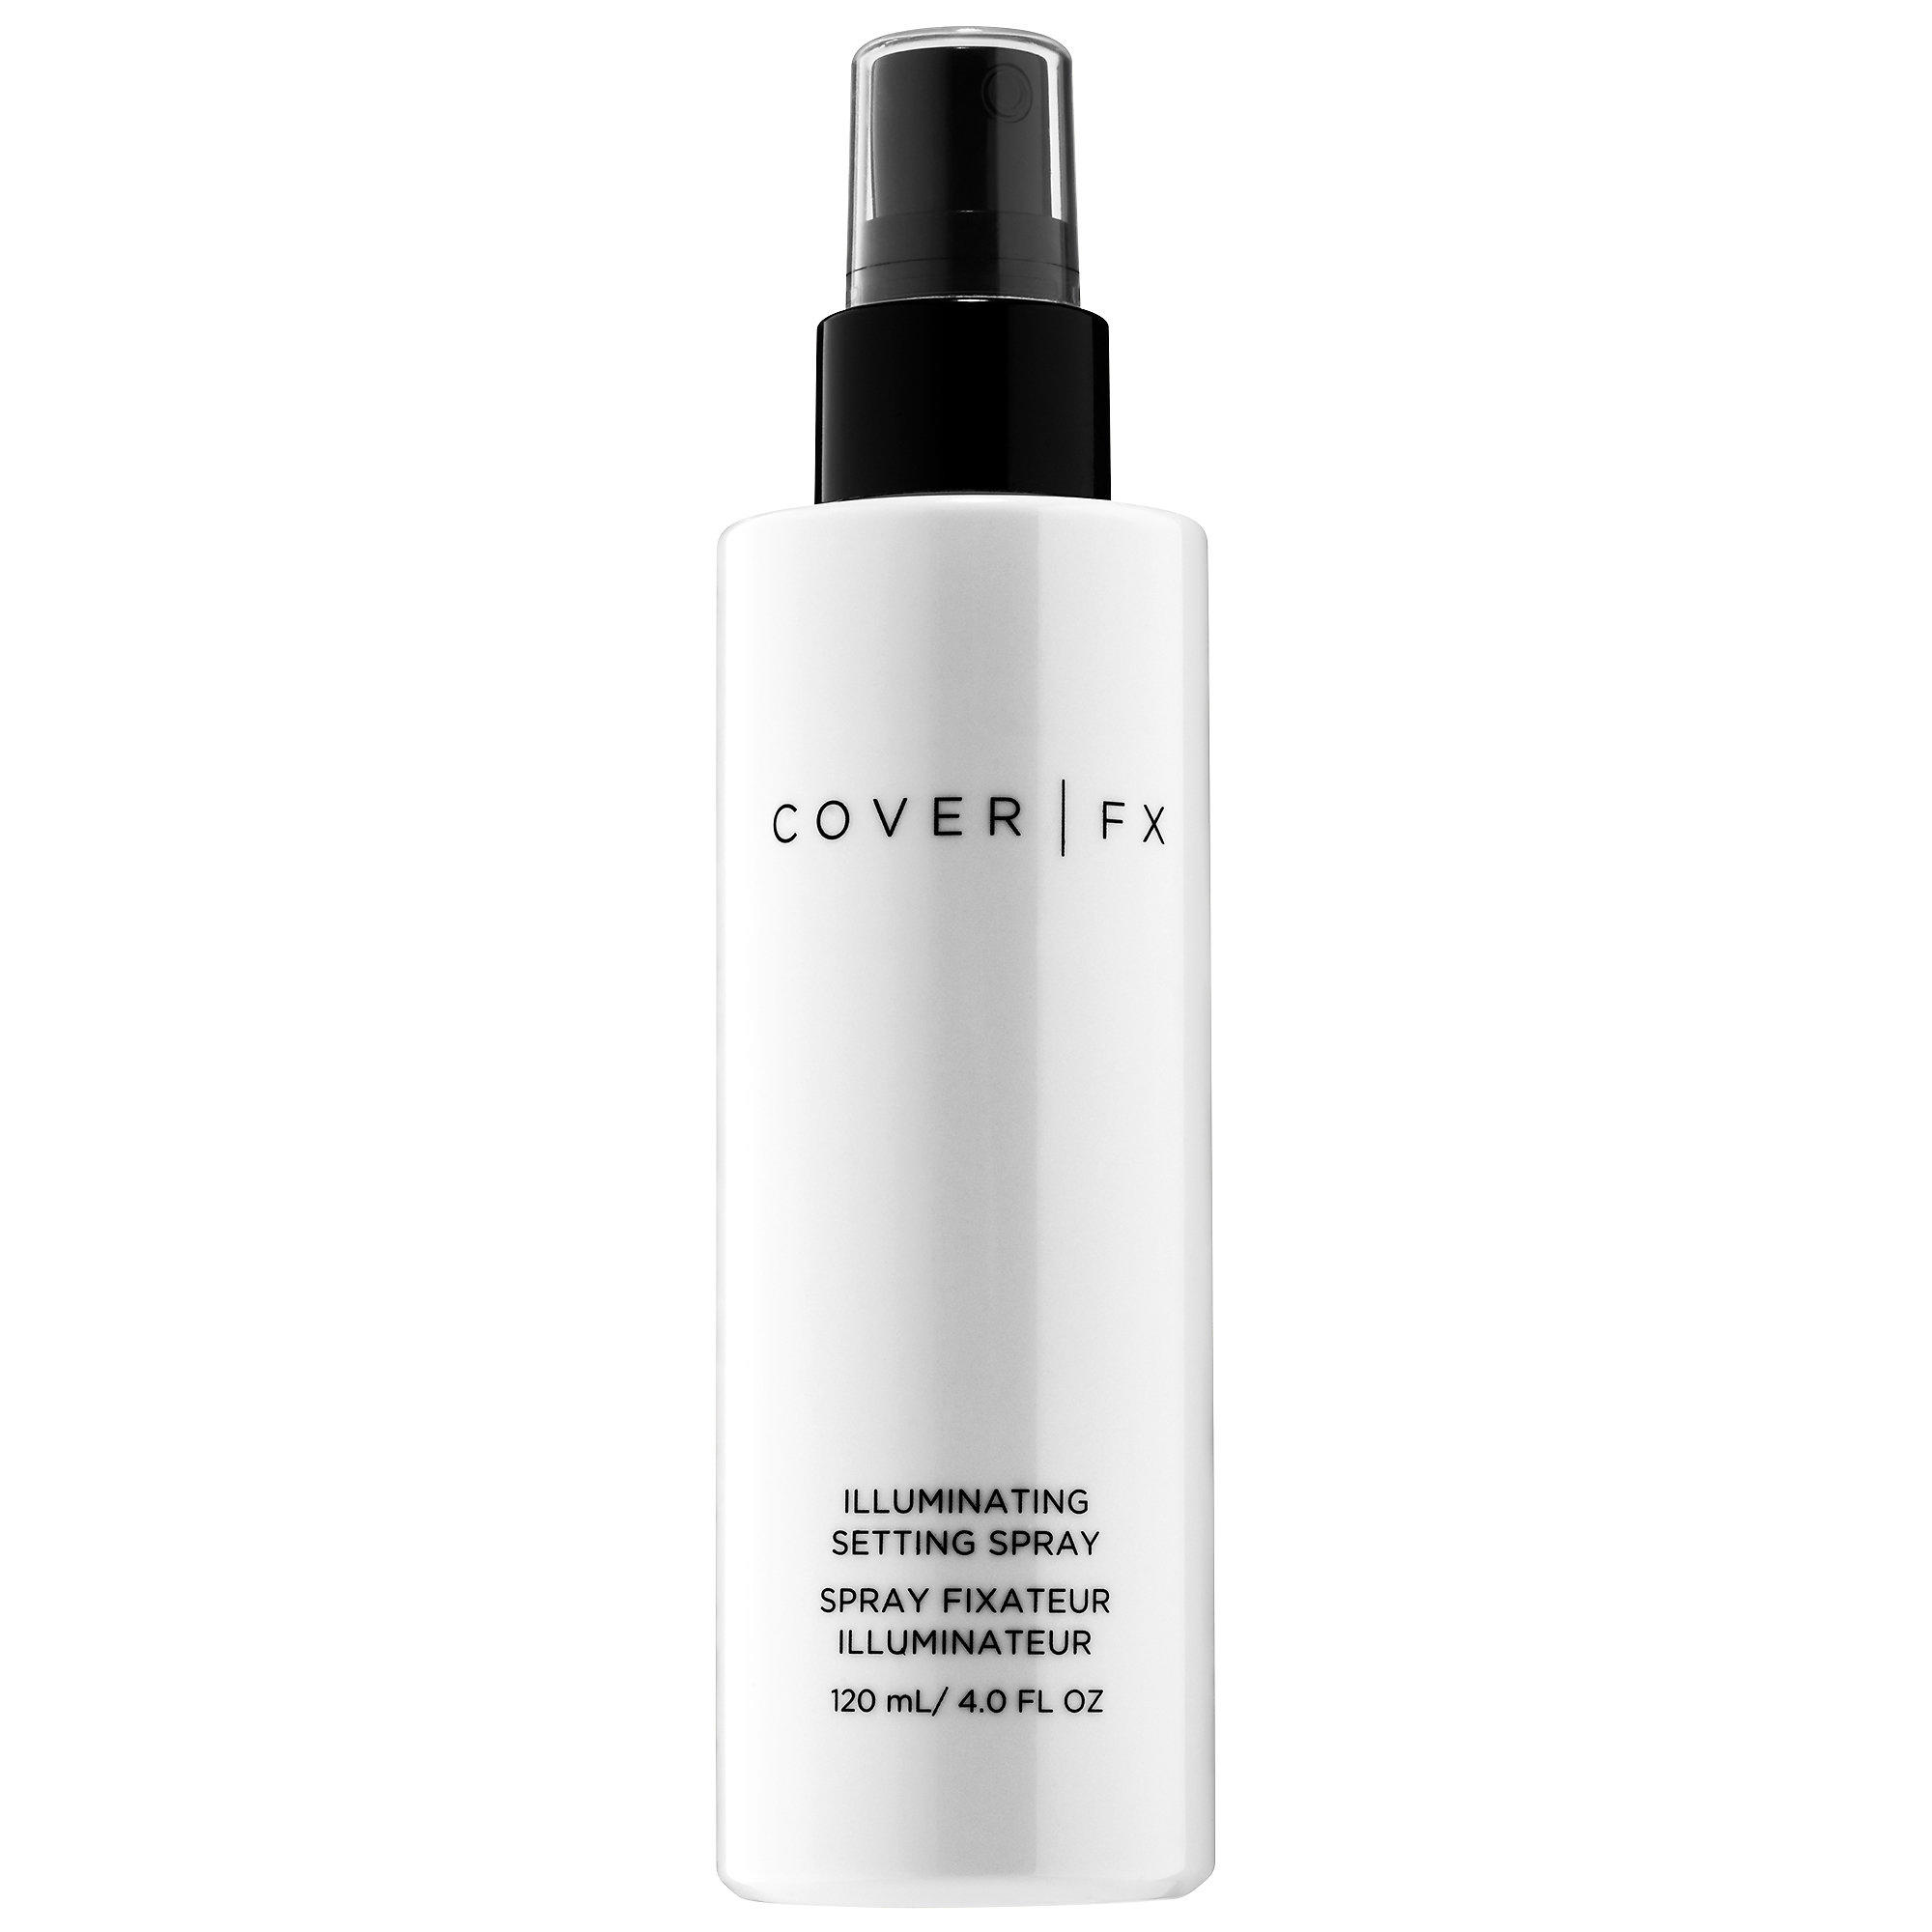 Cover FX Illuminating Setting Spray 120ml